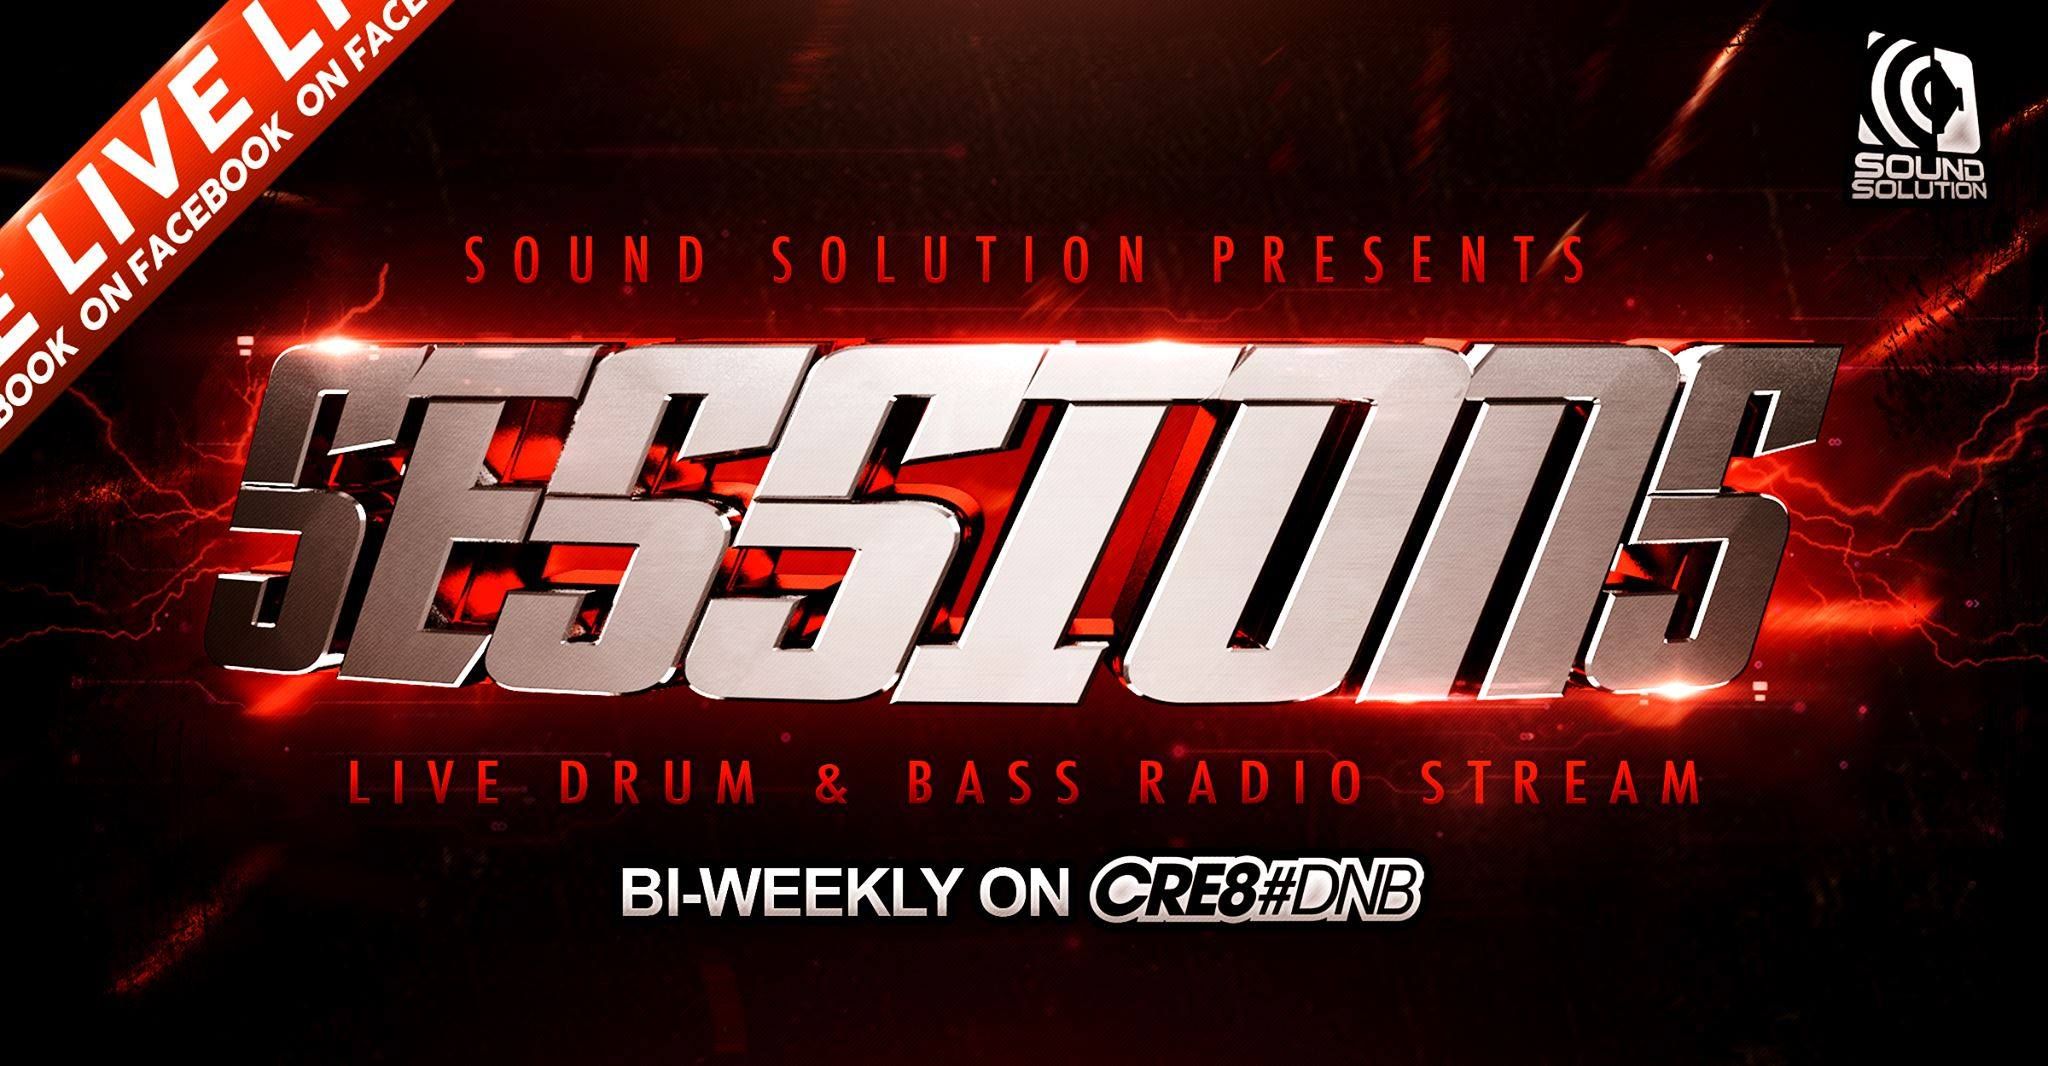 Sound Solution Sessions: 4 March 2019